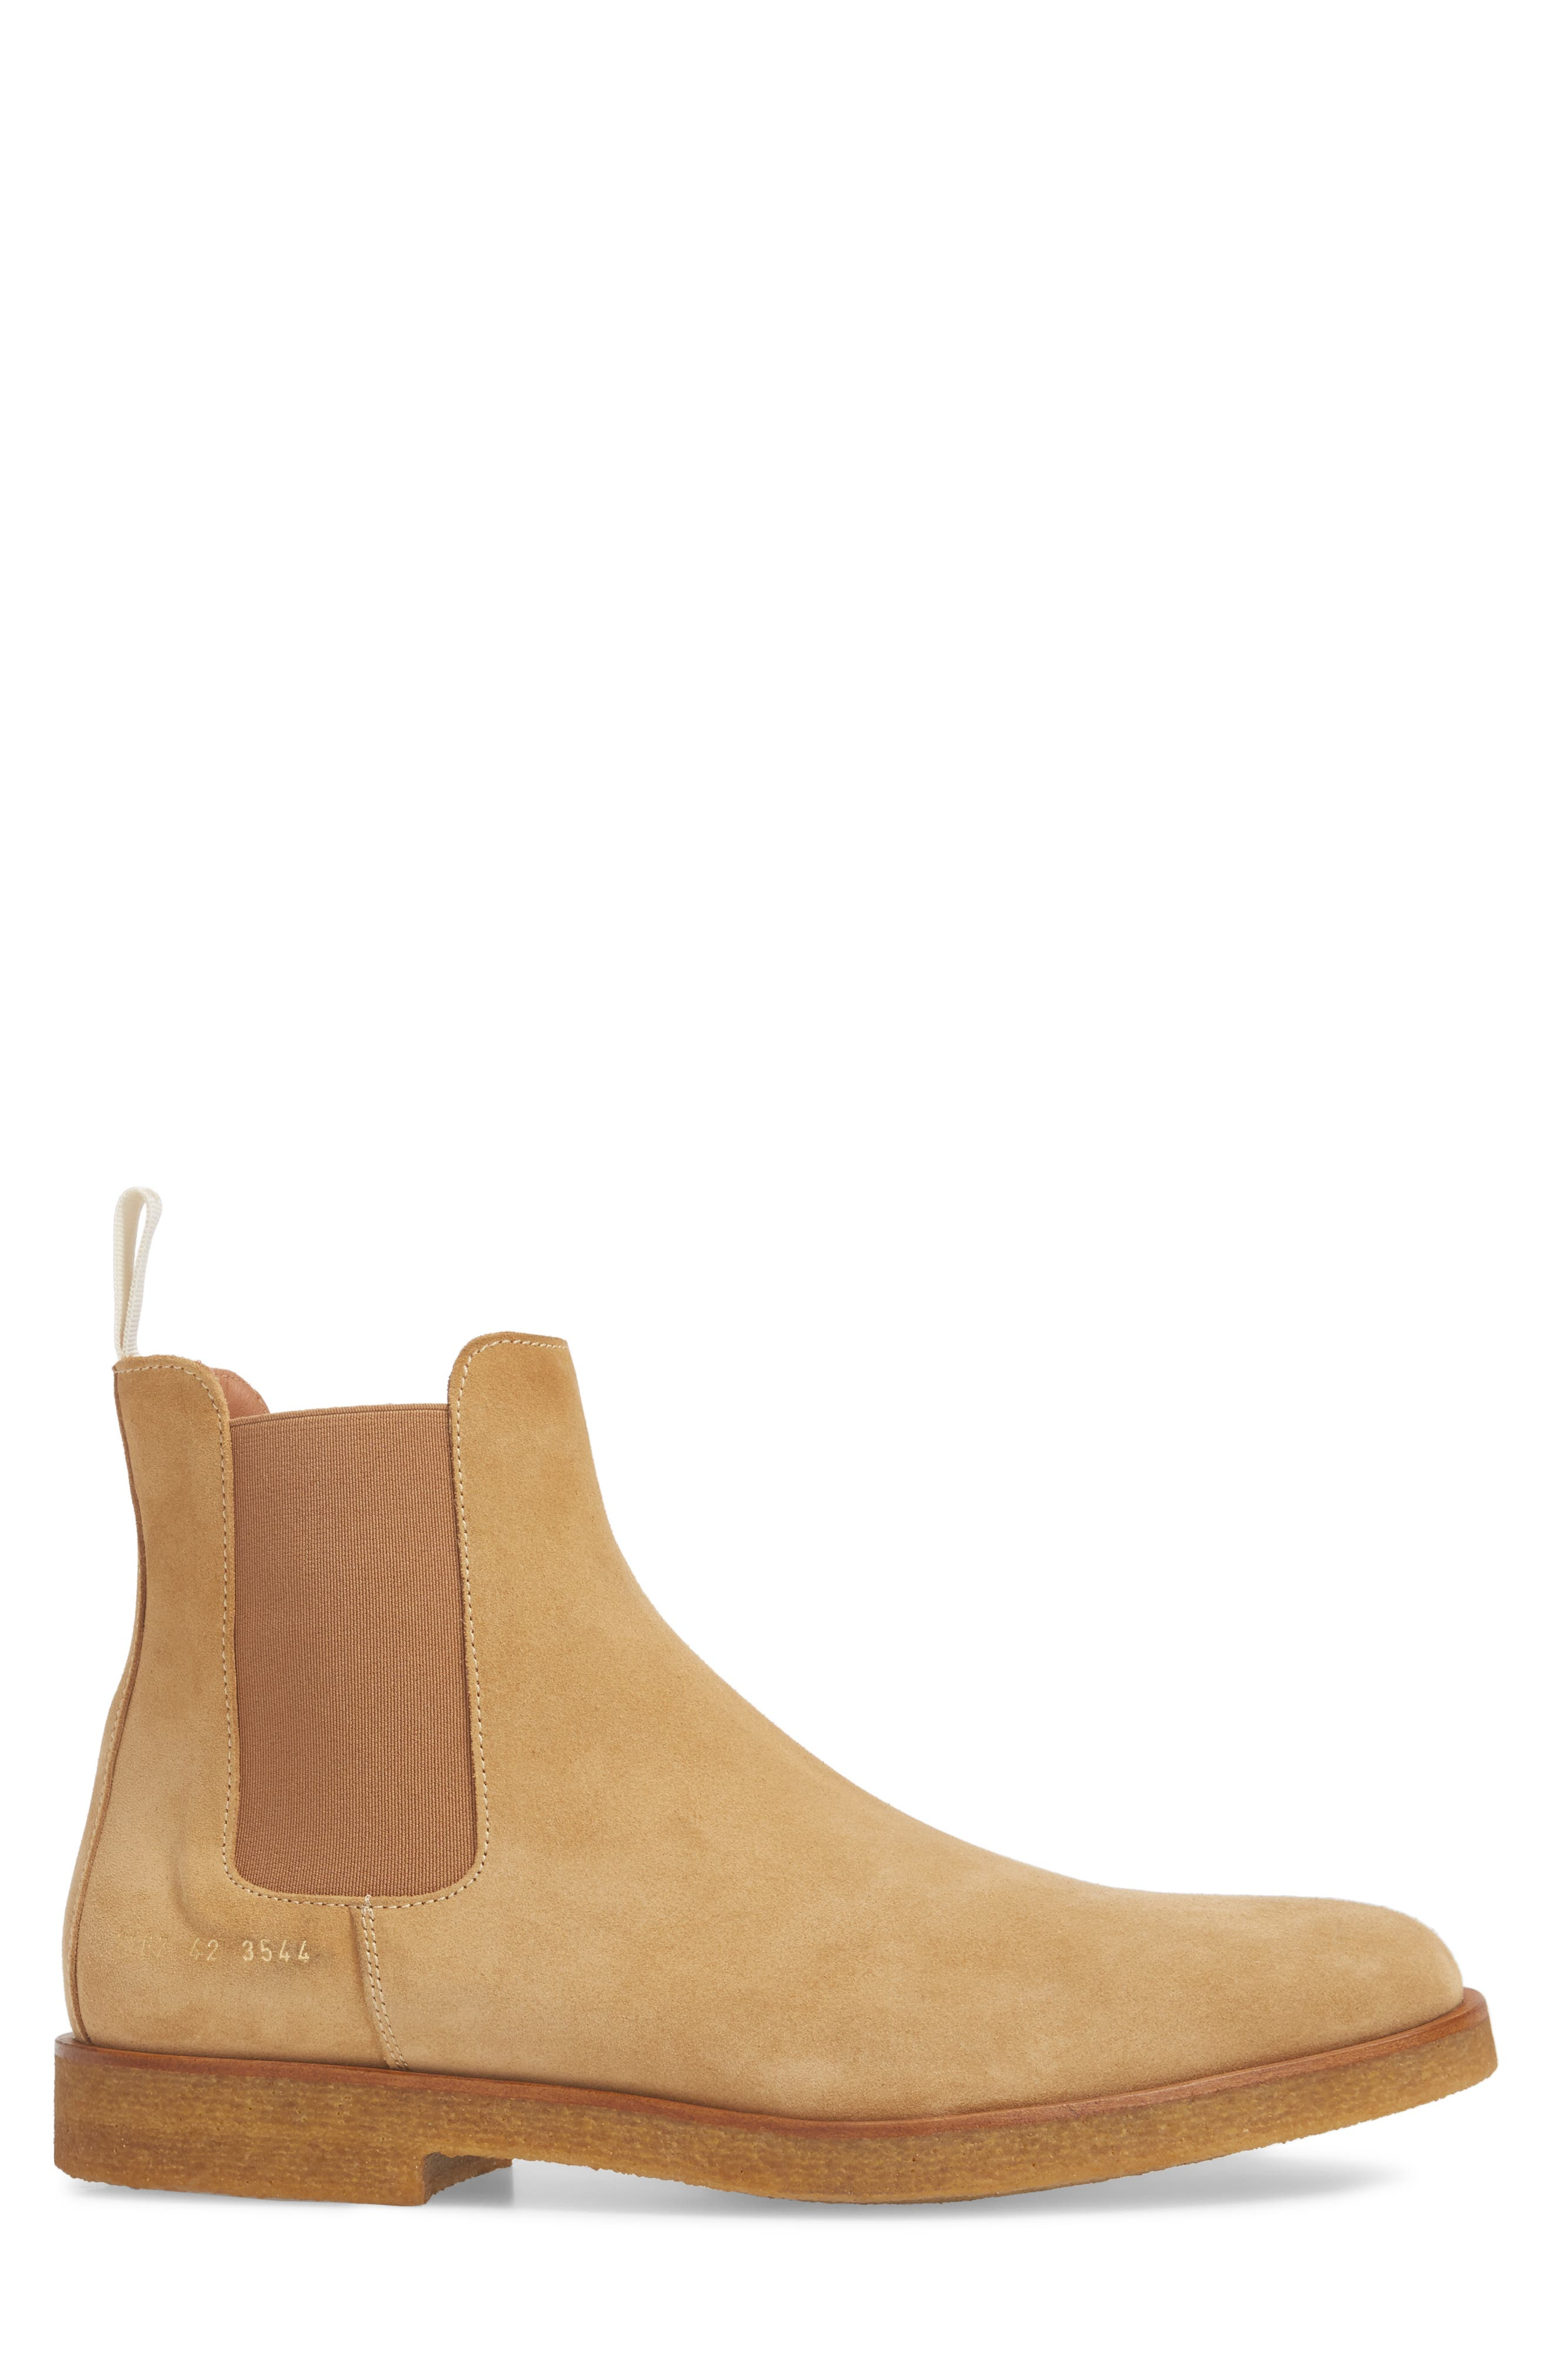 Chelsea Boot,                             Alternate thumbnail 3, color,                             AMBER SUEDE